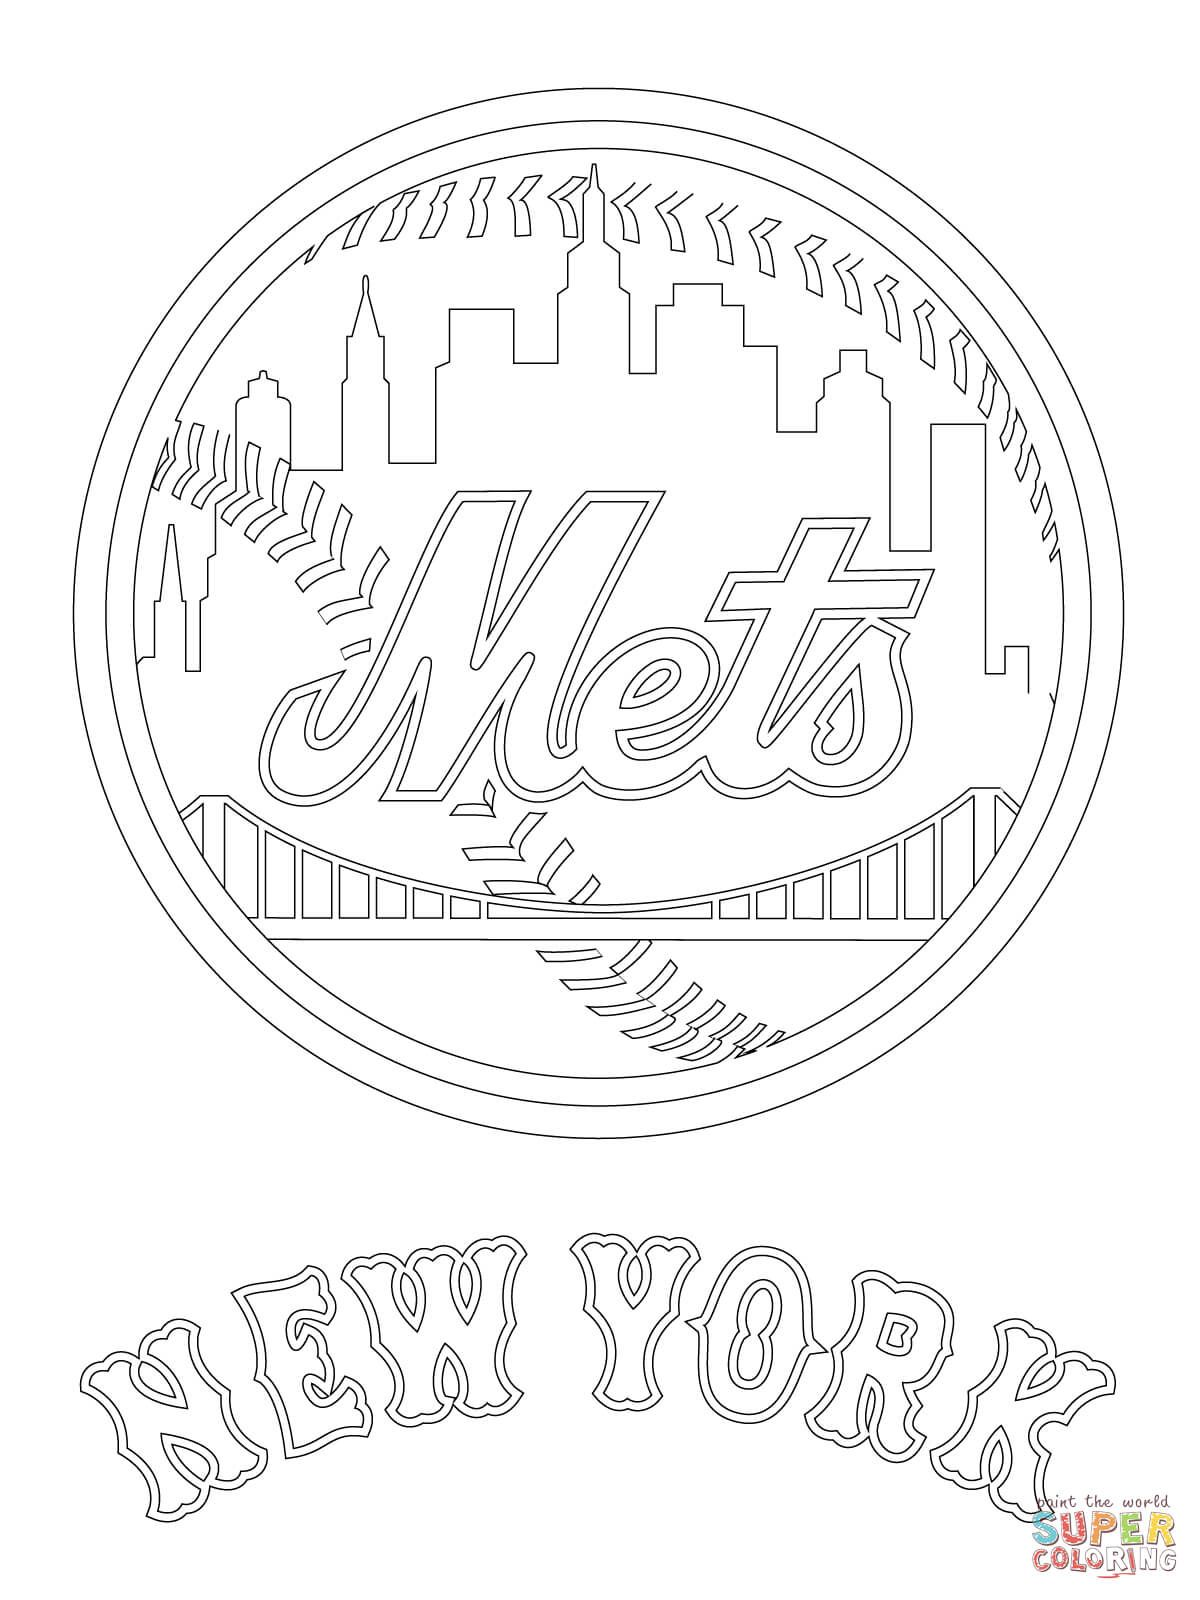 New York Mets Logo Coloring Page From Mlb Category Select From 29032 Printable Crafts Of Ca New York Mets Logo Baseball Coloring Pages Detailed Coloring Pages